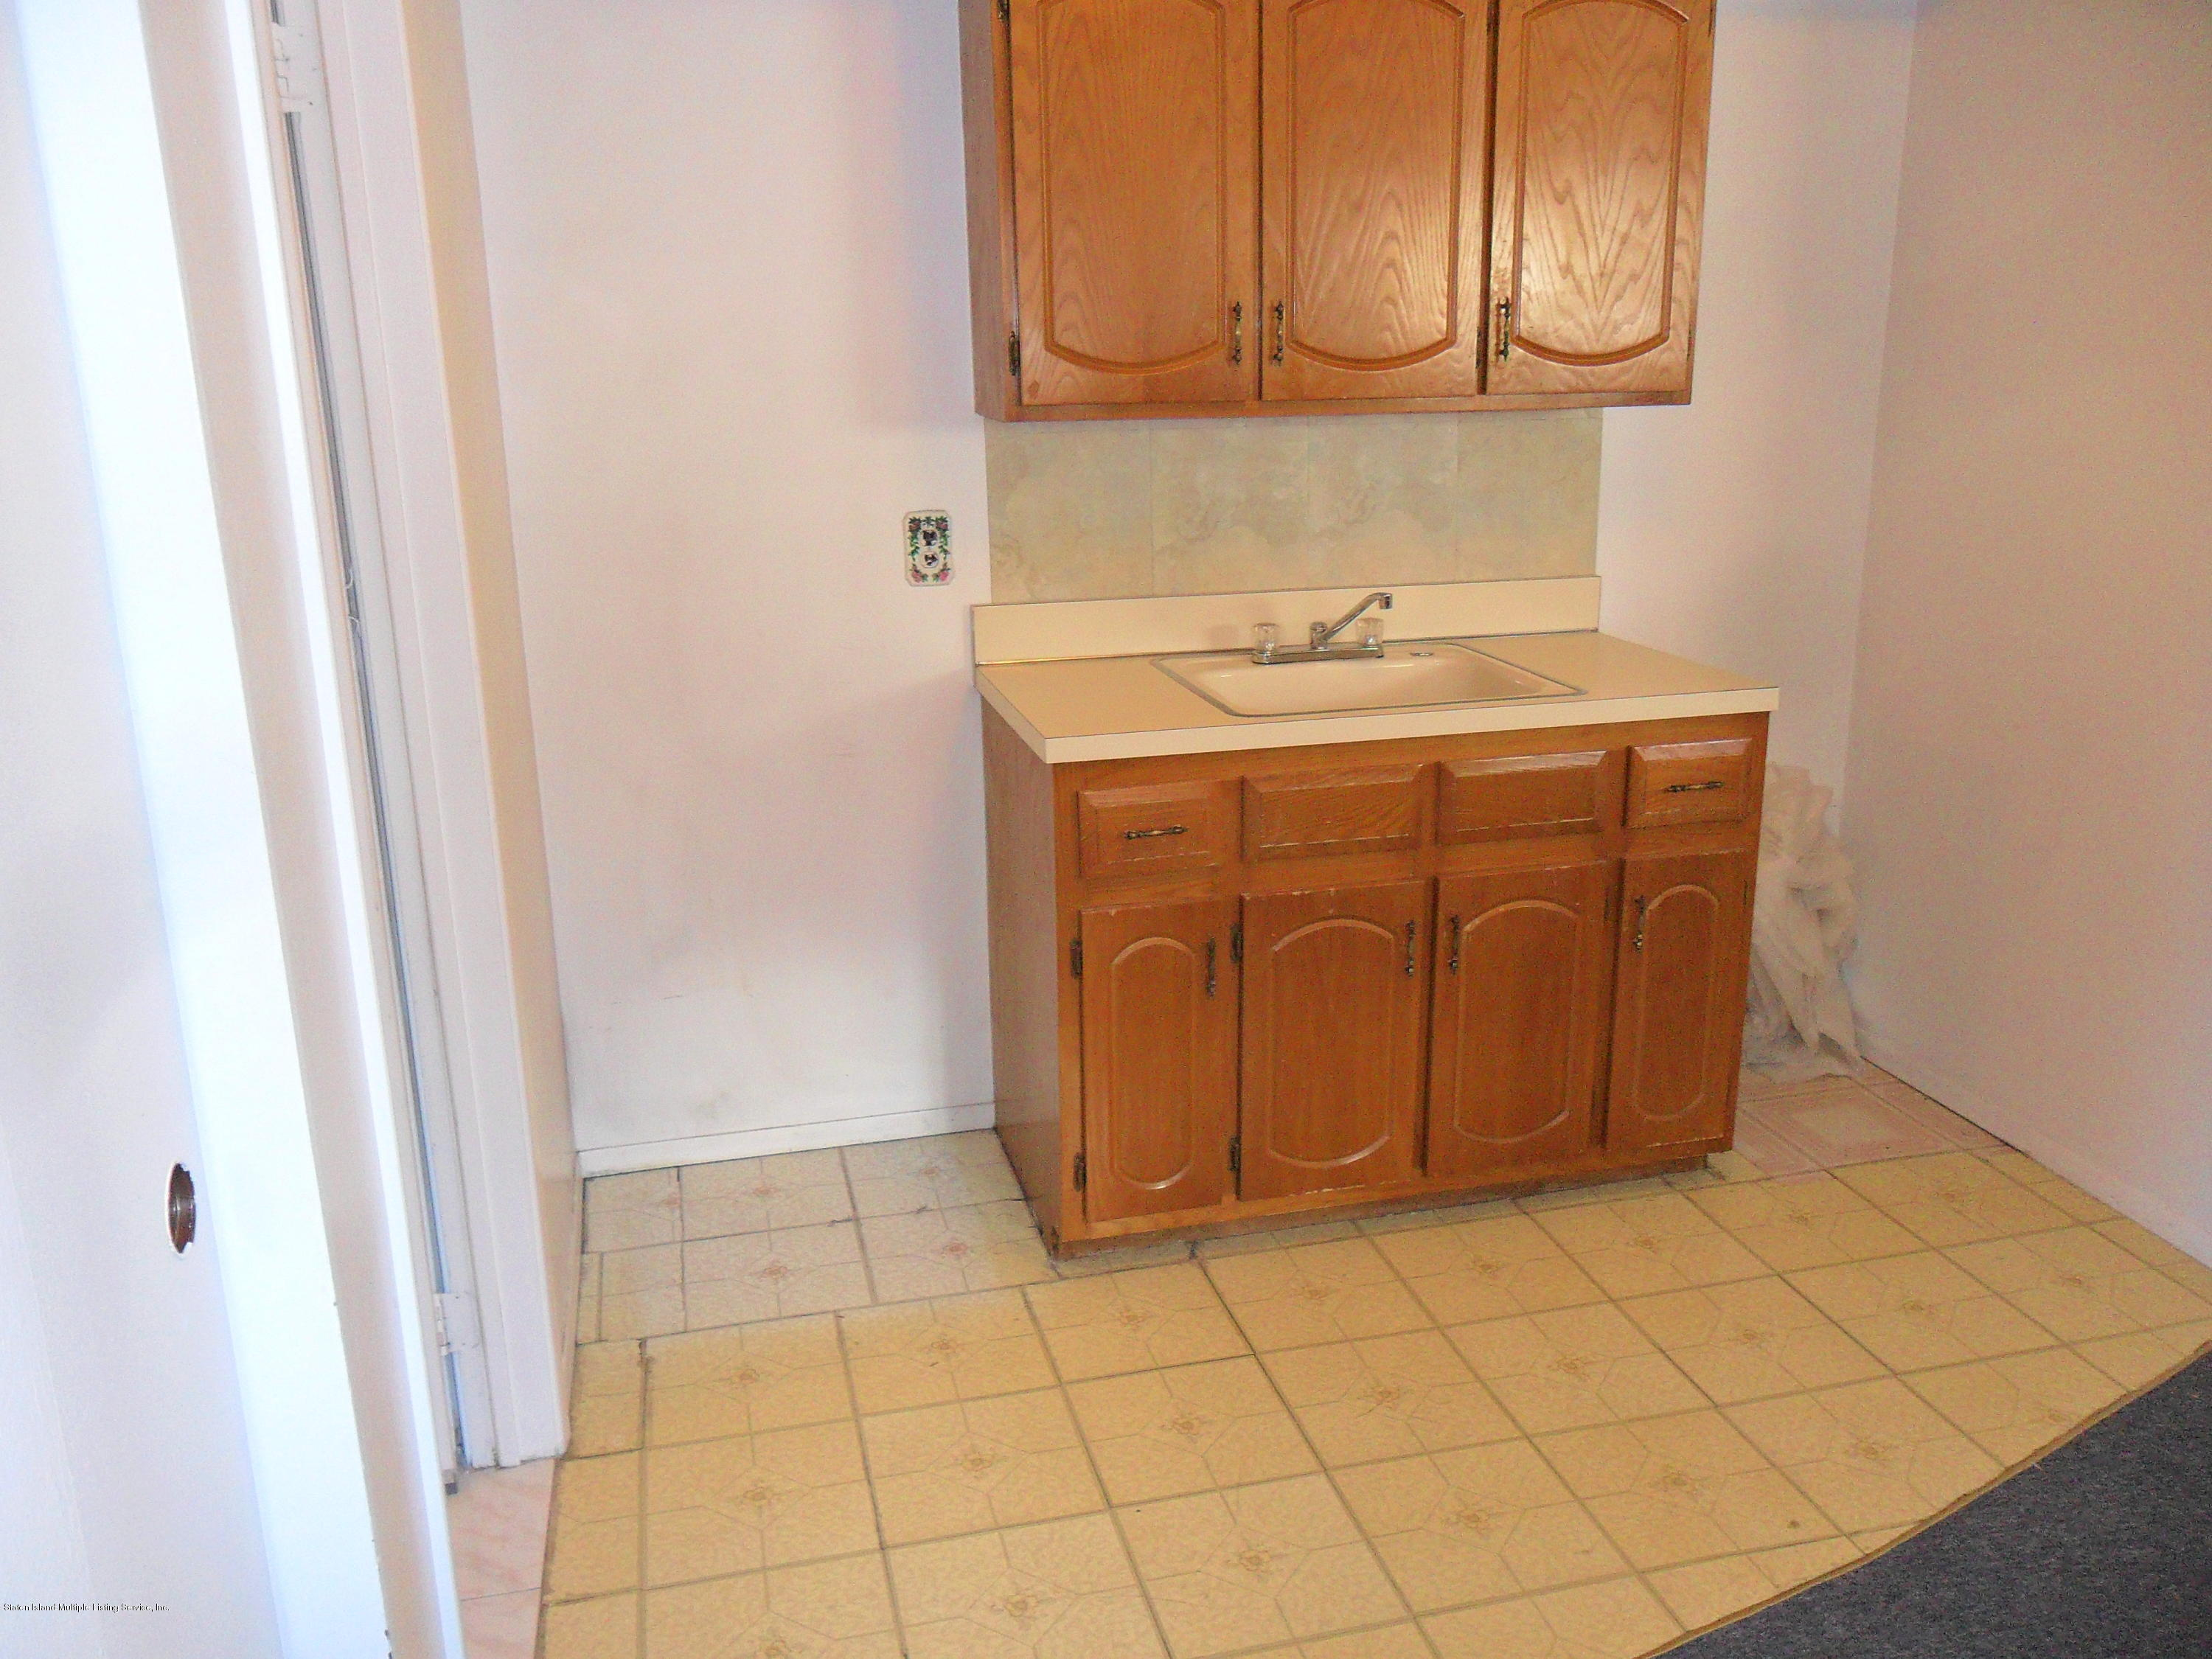 Single Family - Semi-Attached 50 Forest Street  Staten Island, NY 10314, MLS-1127879-41